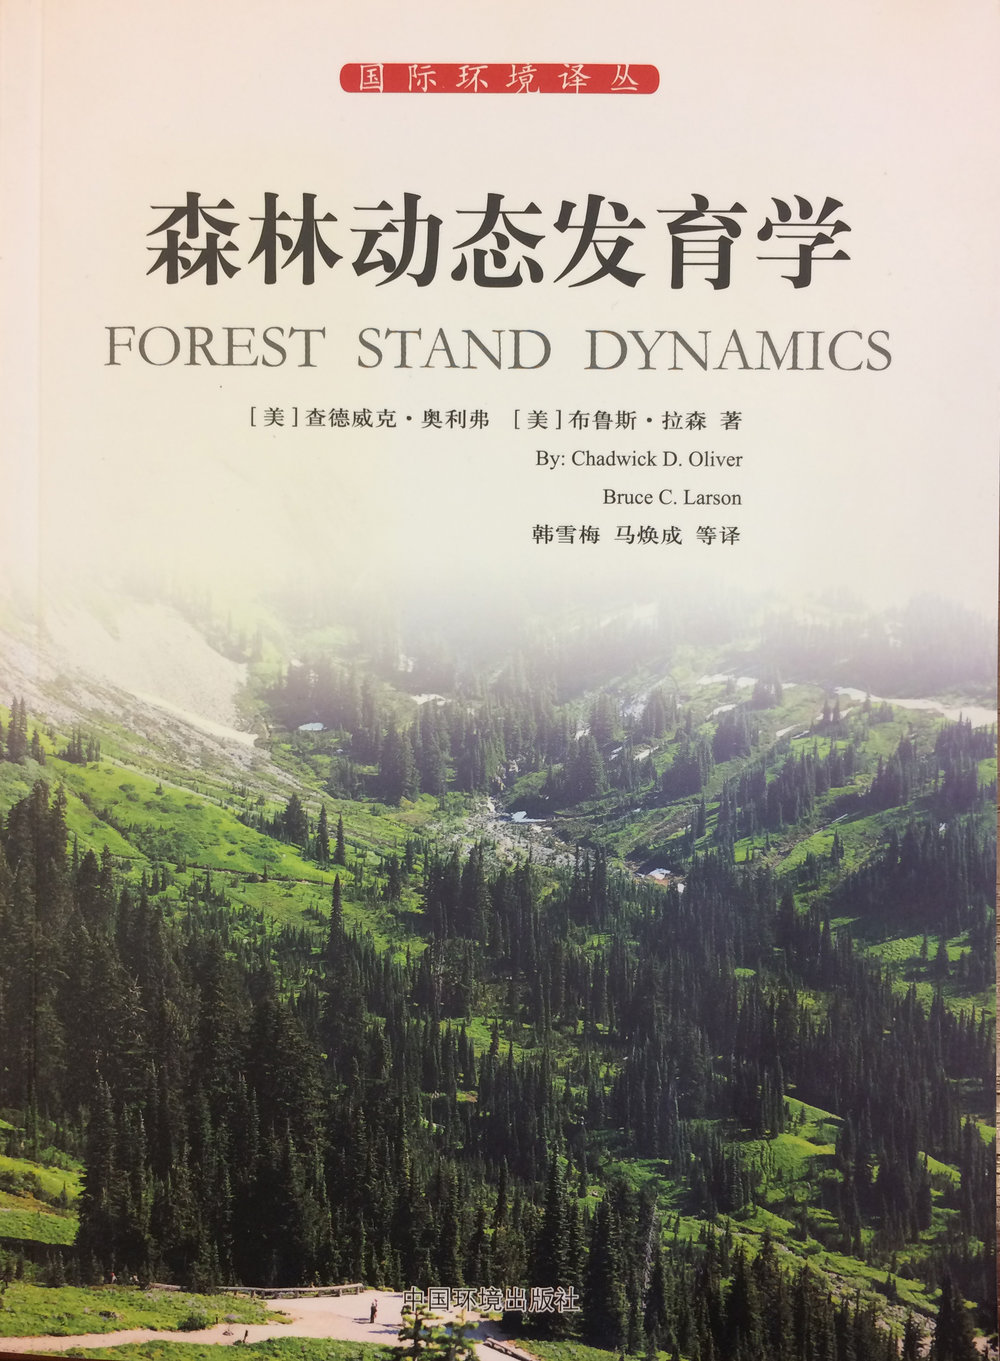 Chinese Forest Stand Dynamics cover.jpg